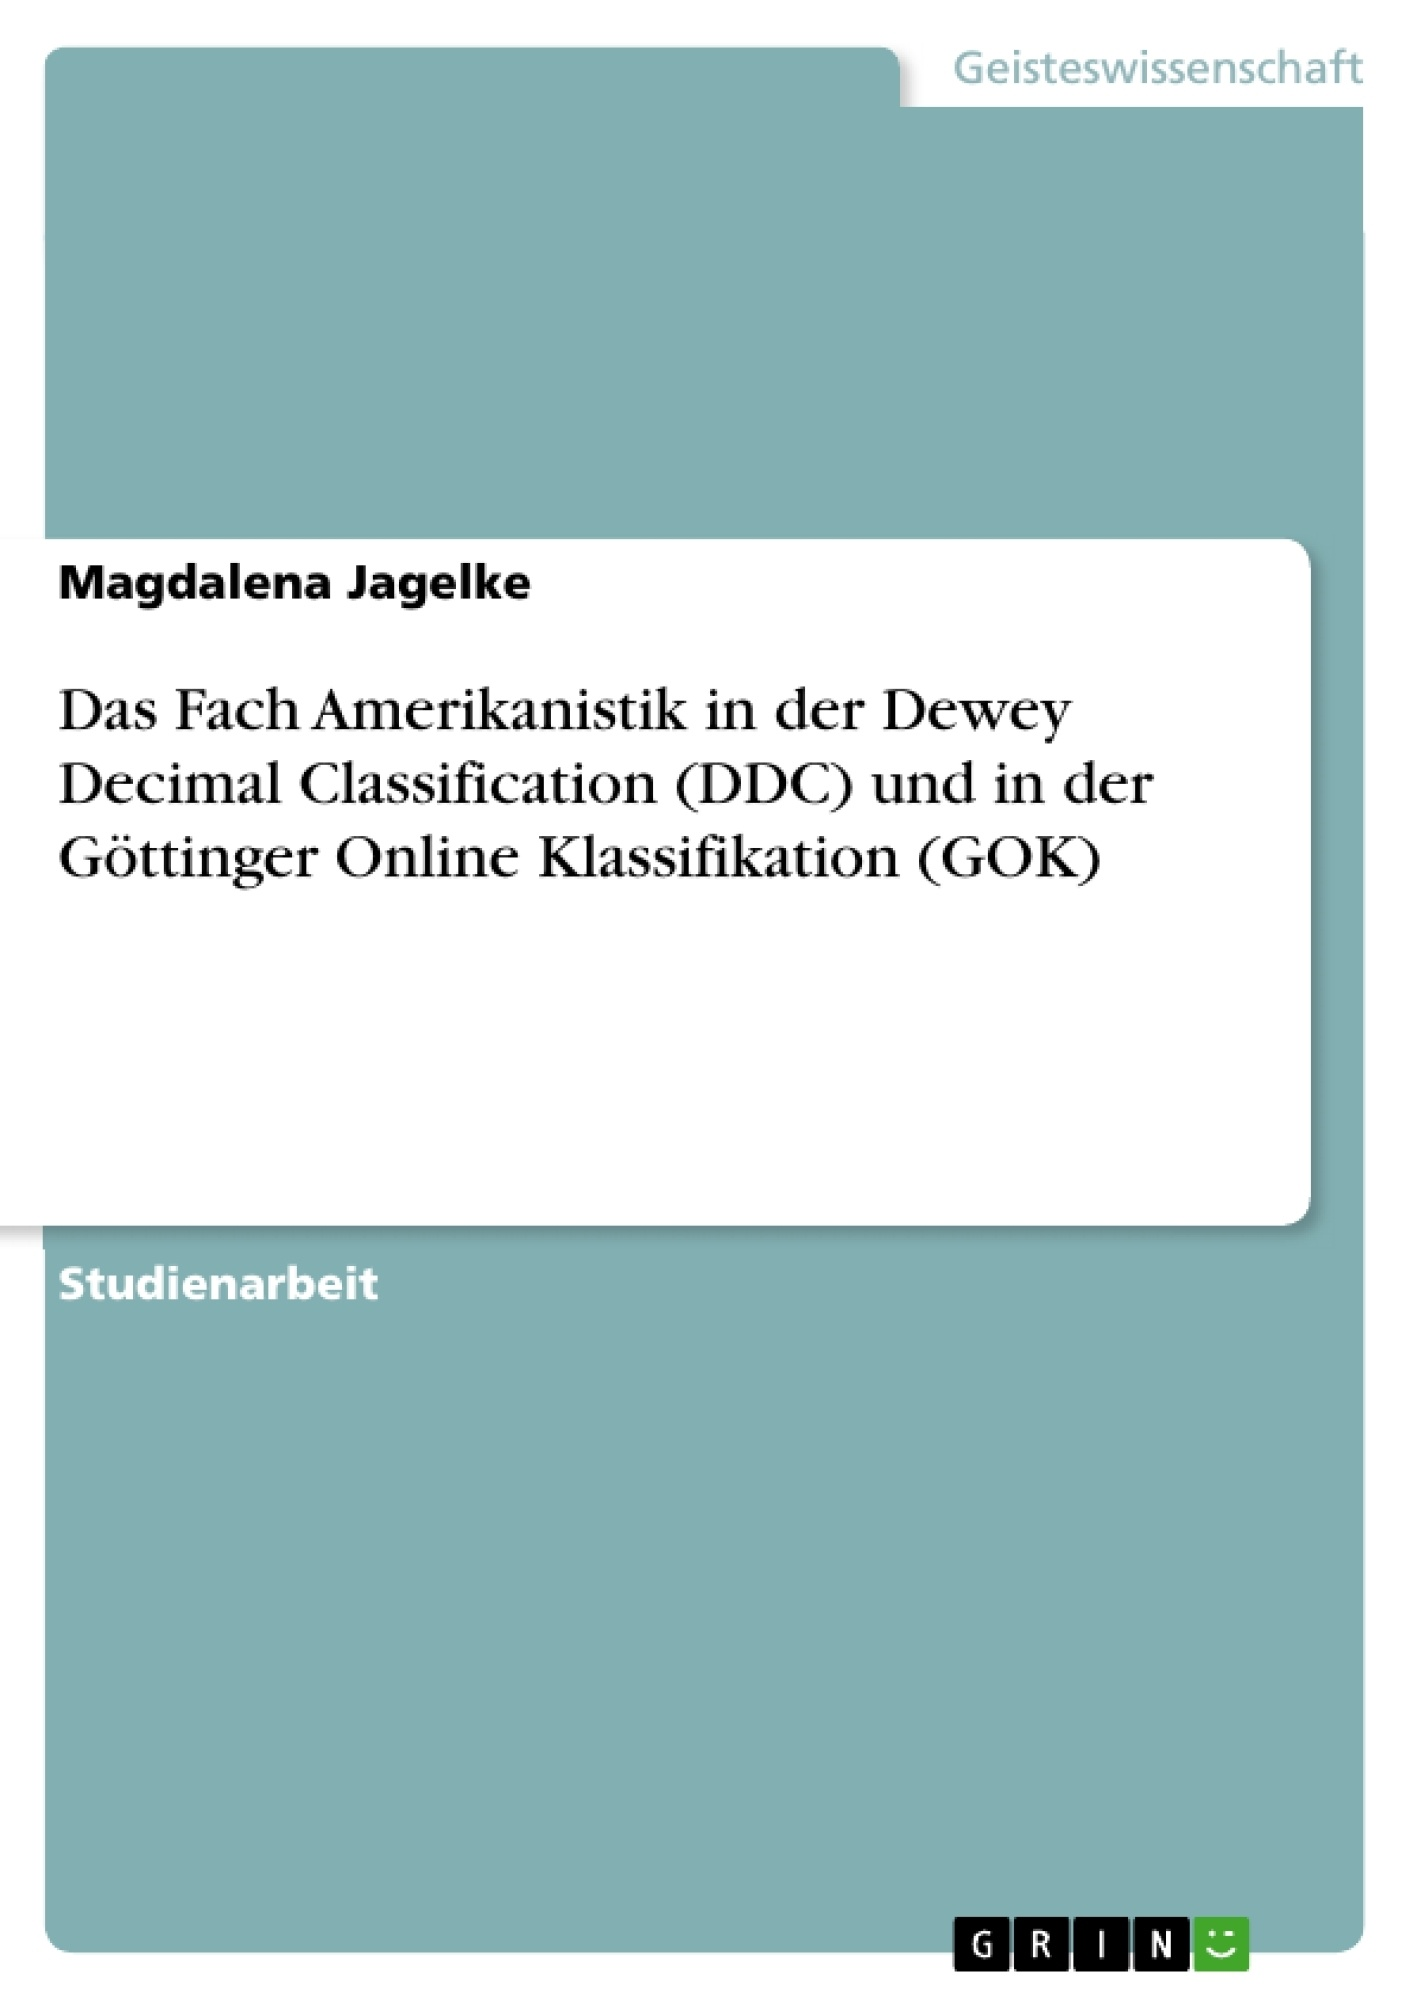 Titel: Das Fach Amerikanistik in der Dewey Decimal Classification (DDC) und in der Göttinger Online Klassifikation (GOK)